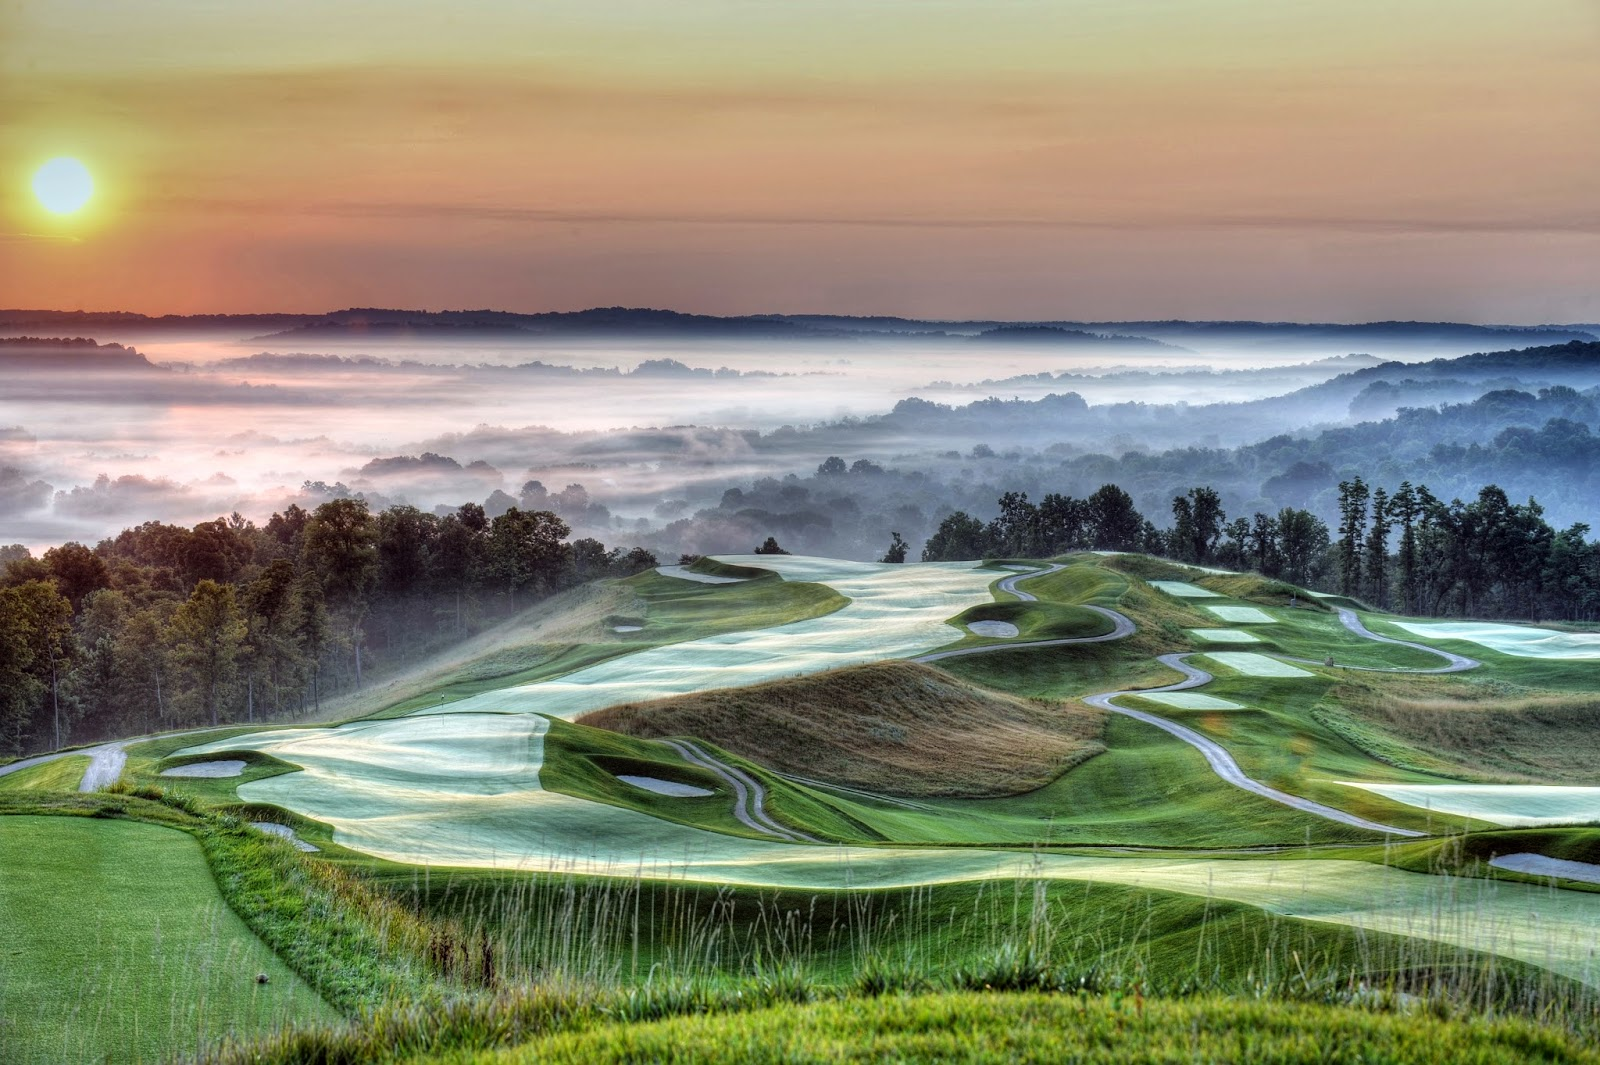 http://frenchlick.com/golf/petedye